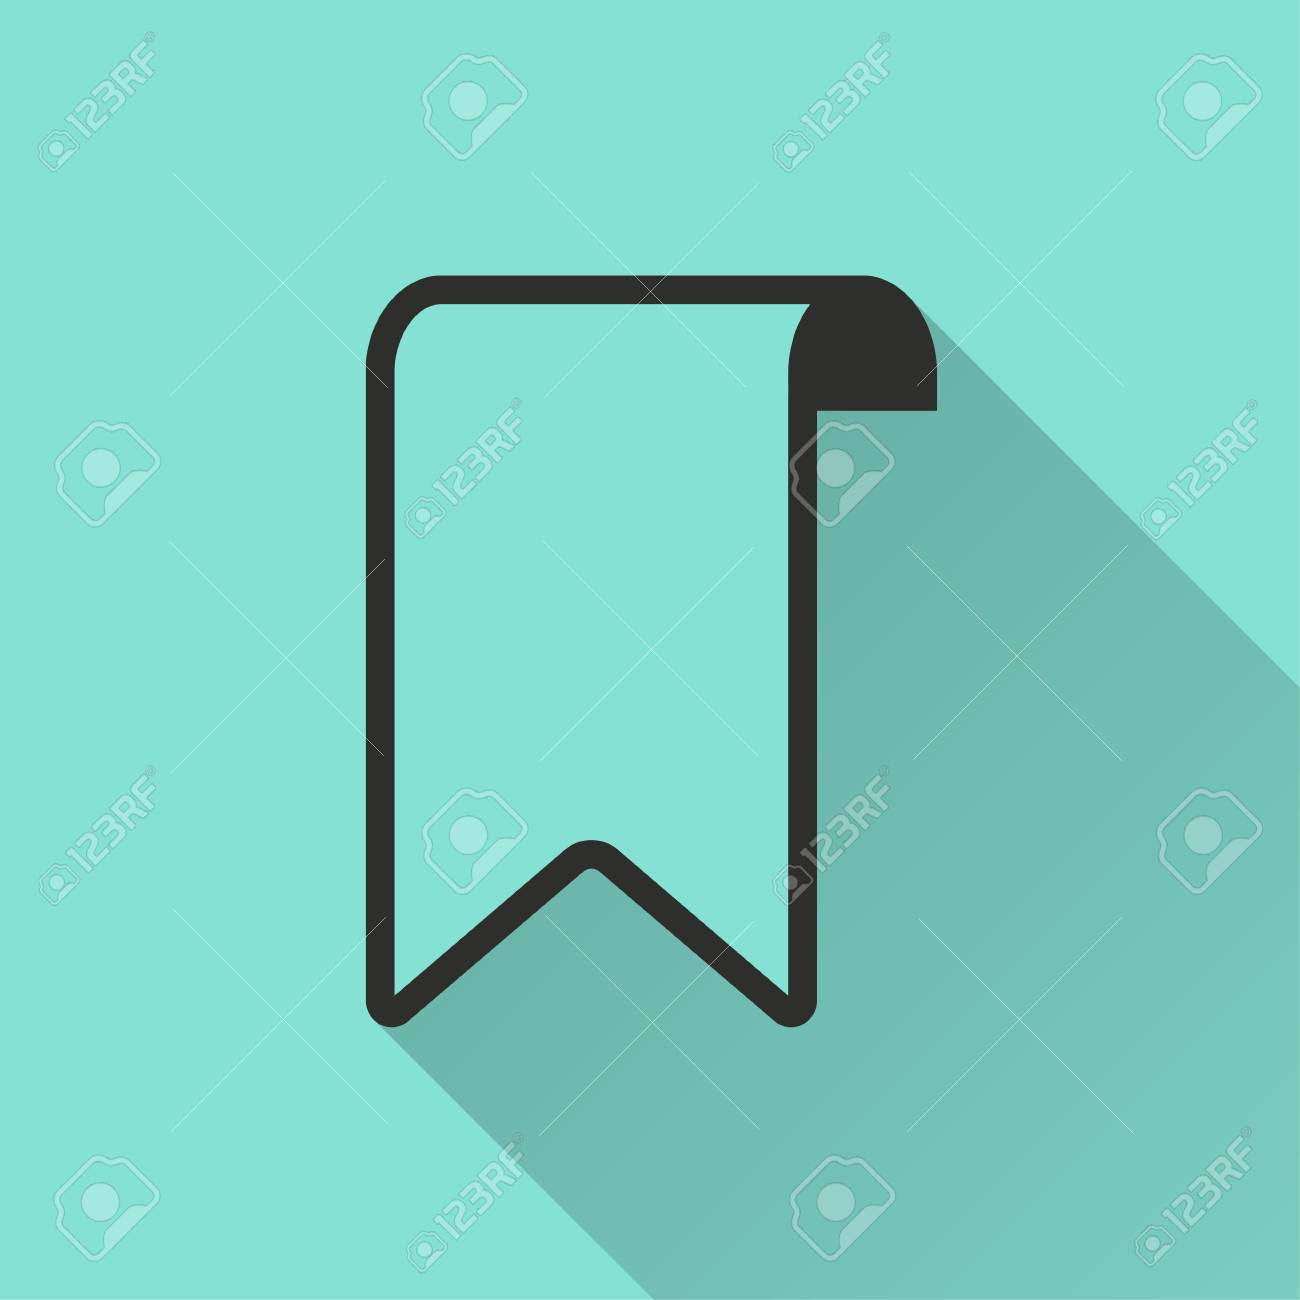 bookmark vector icon with long shadow. black illustration isolated